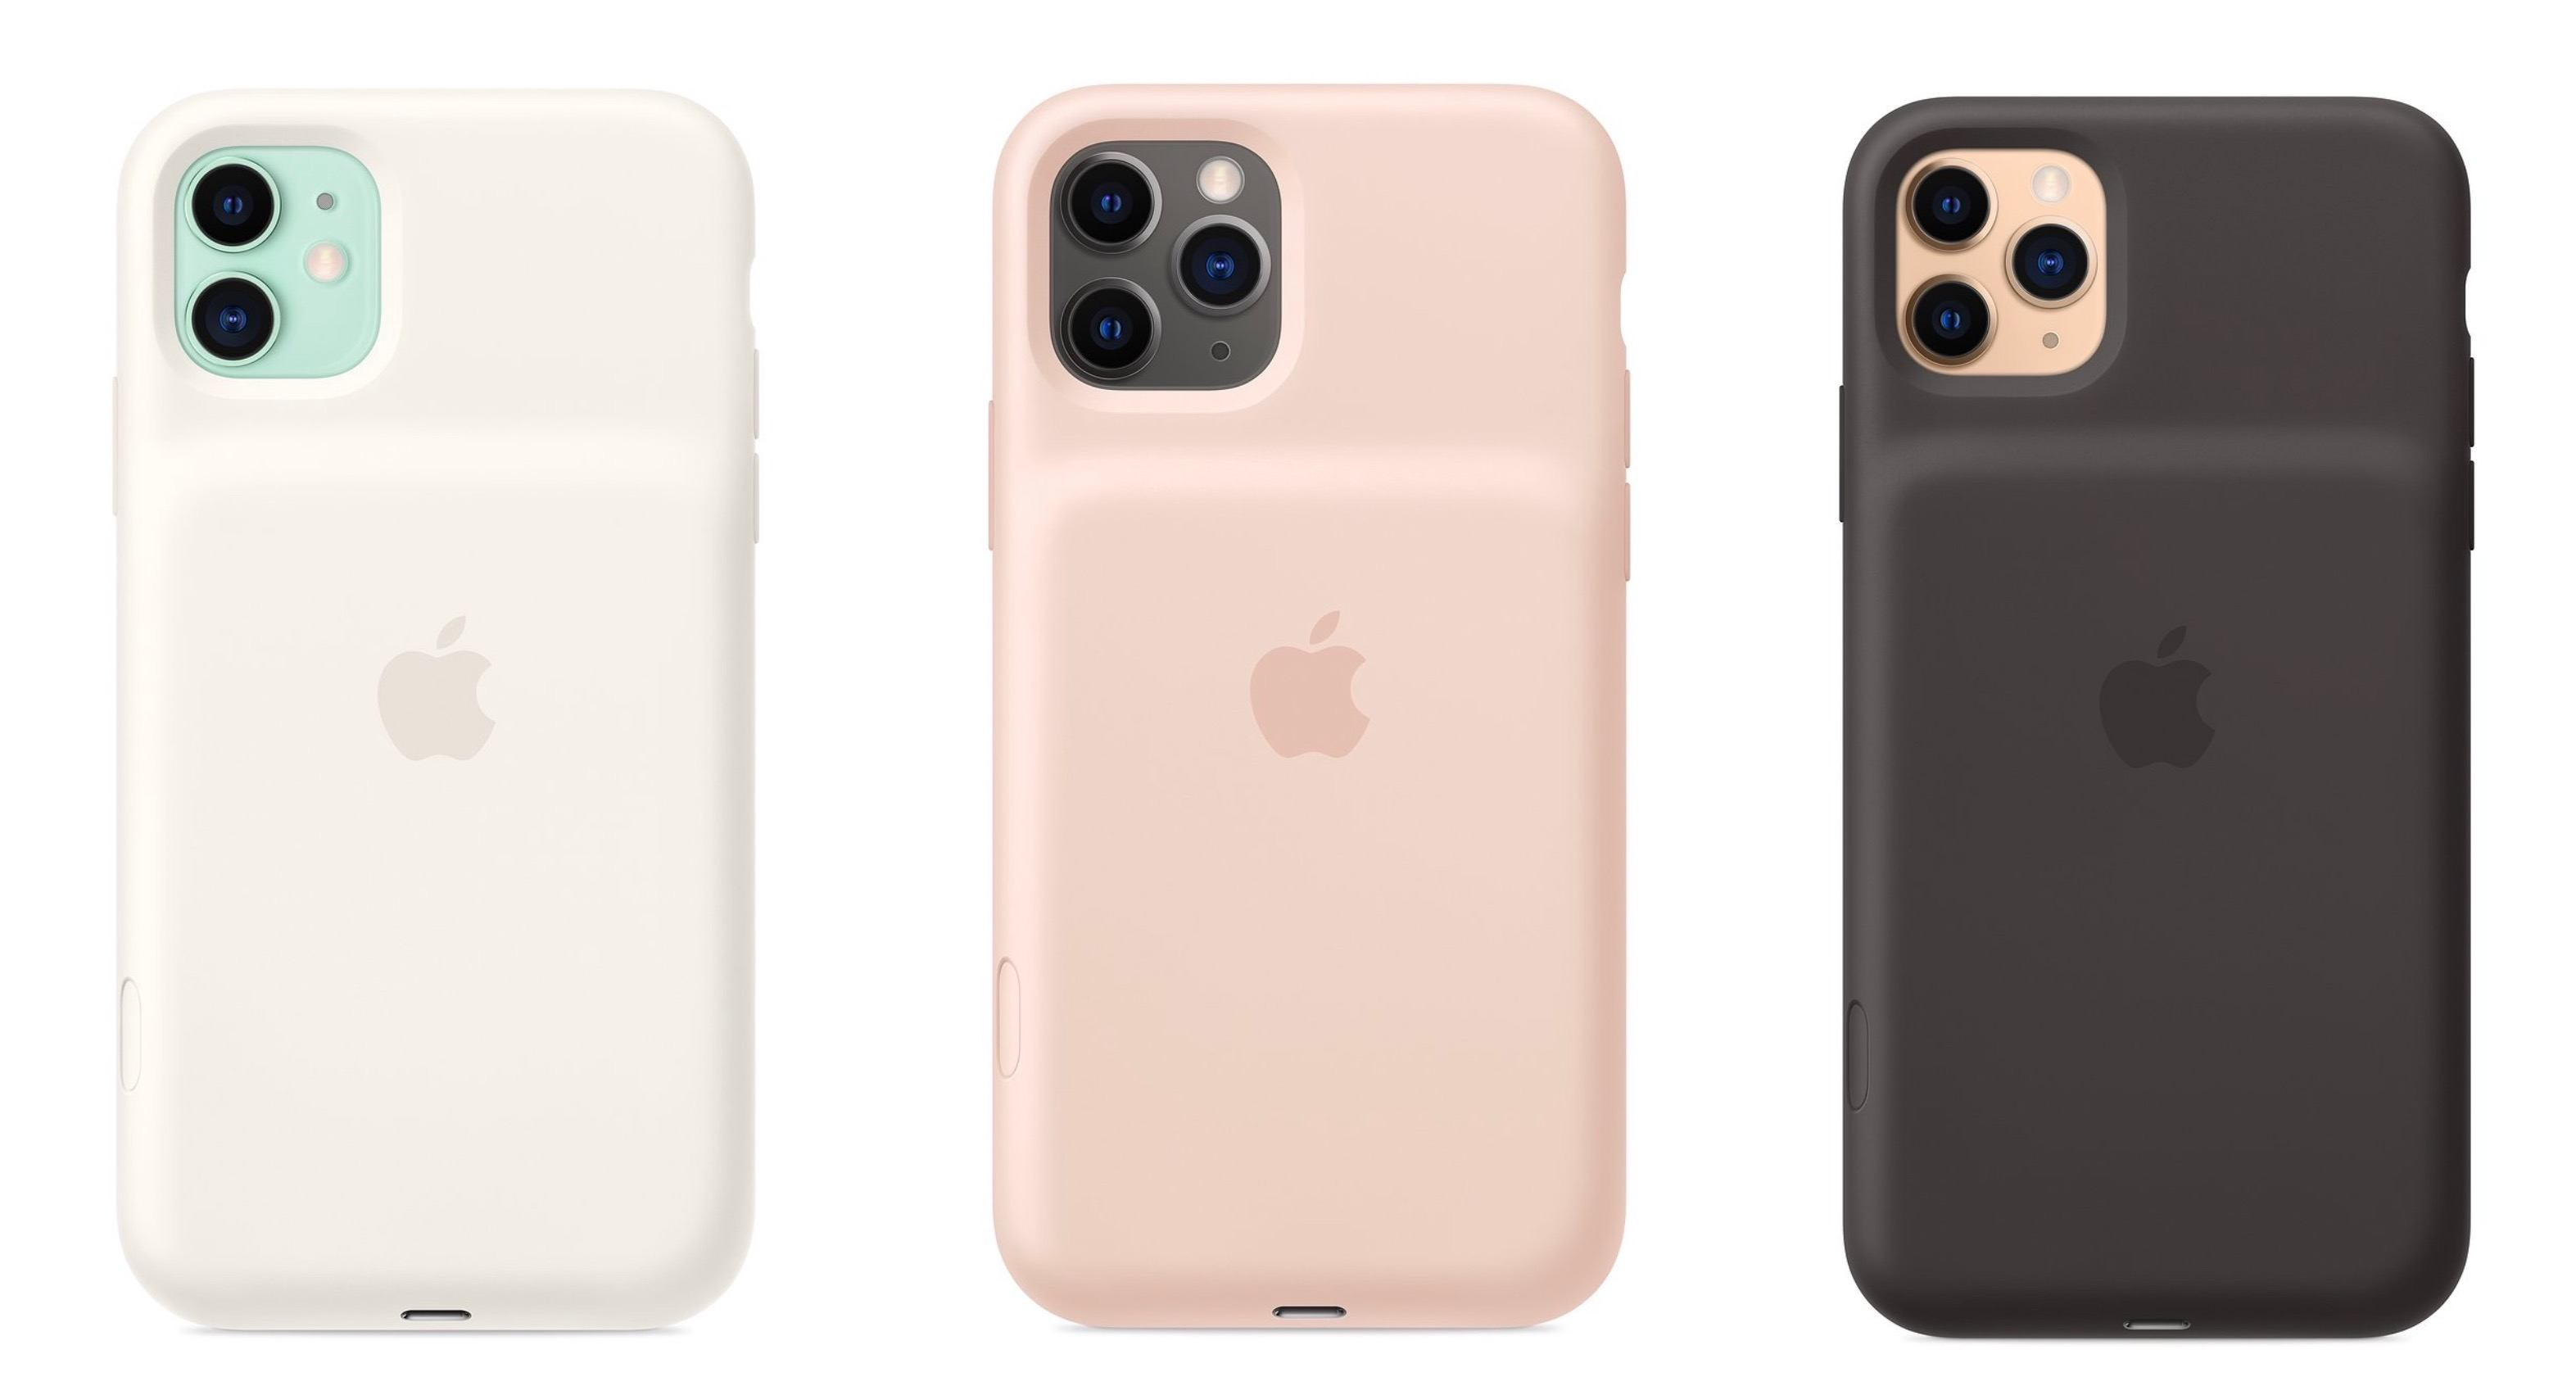 Apple's New iPhone 11 Cases Feature a Built-In Battery & Camera Shortcut Button